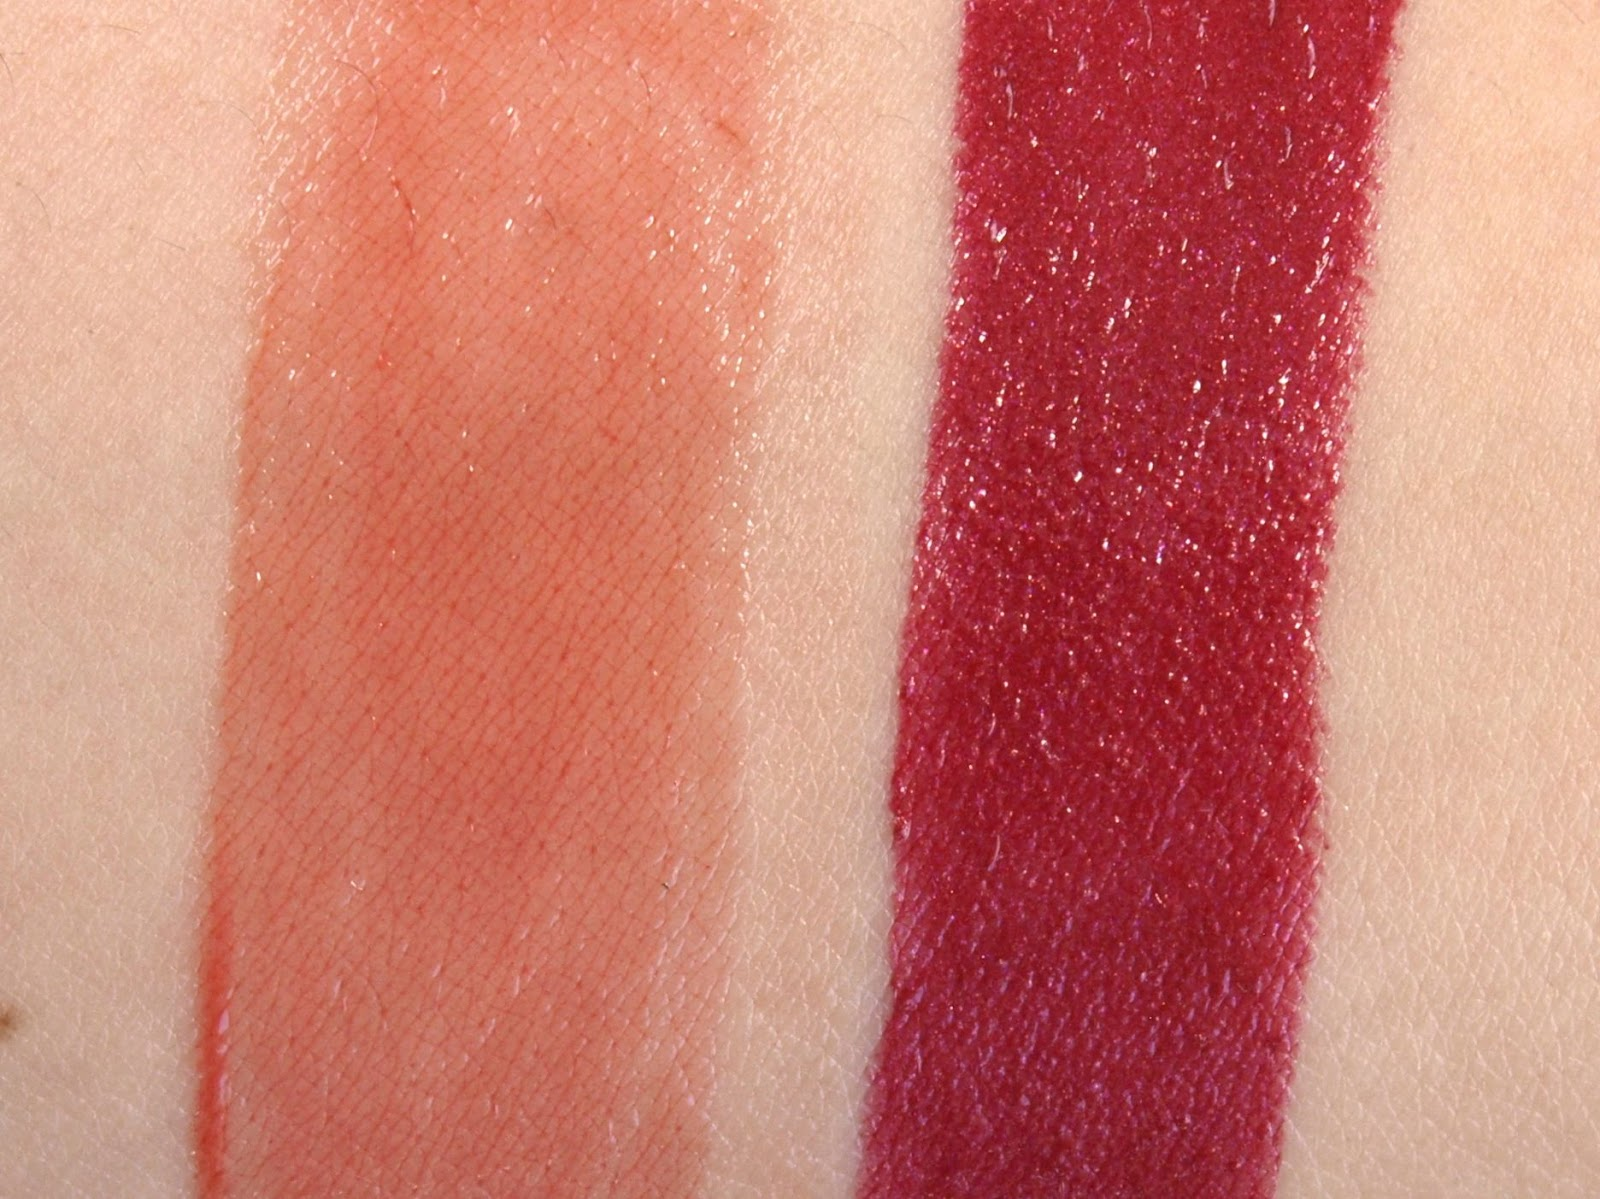 """Fall Lips with YSL: Yves Saint Laurent Rouge Volupté Perle in """"113 Iridescent Burgundy"""" & Volupté Sheer Candy in """"7 Sweet Fig"""" Review and Swatches"""